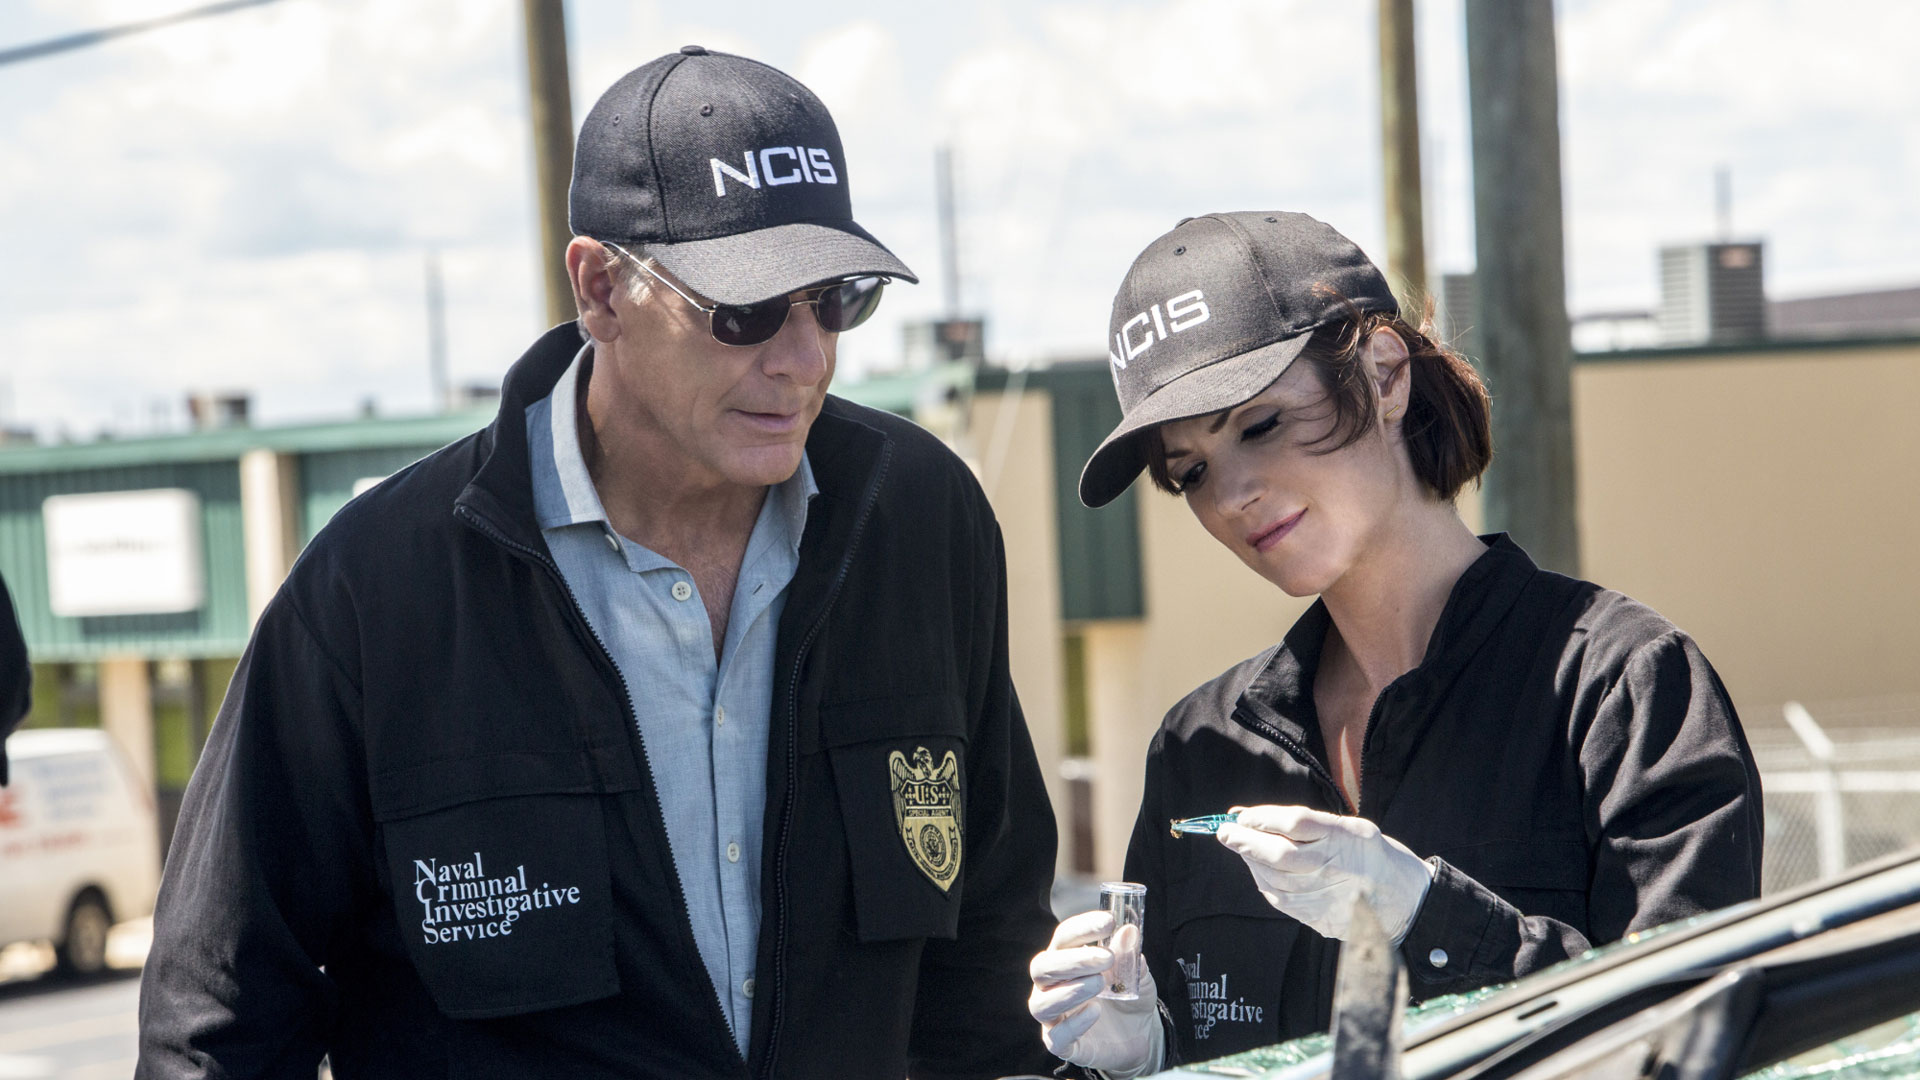 Scott Bakula as Dwayne Pride  and Zoe McLellan as Meredith Brody